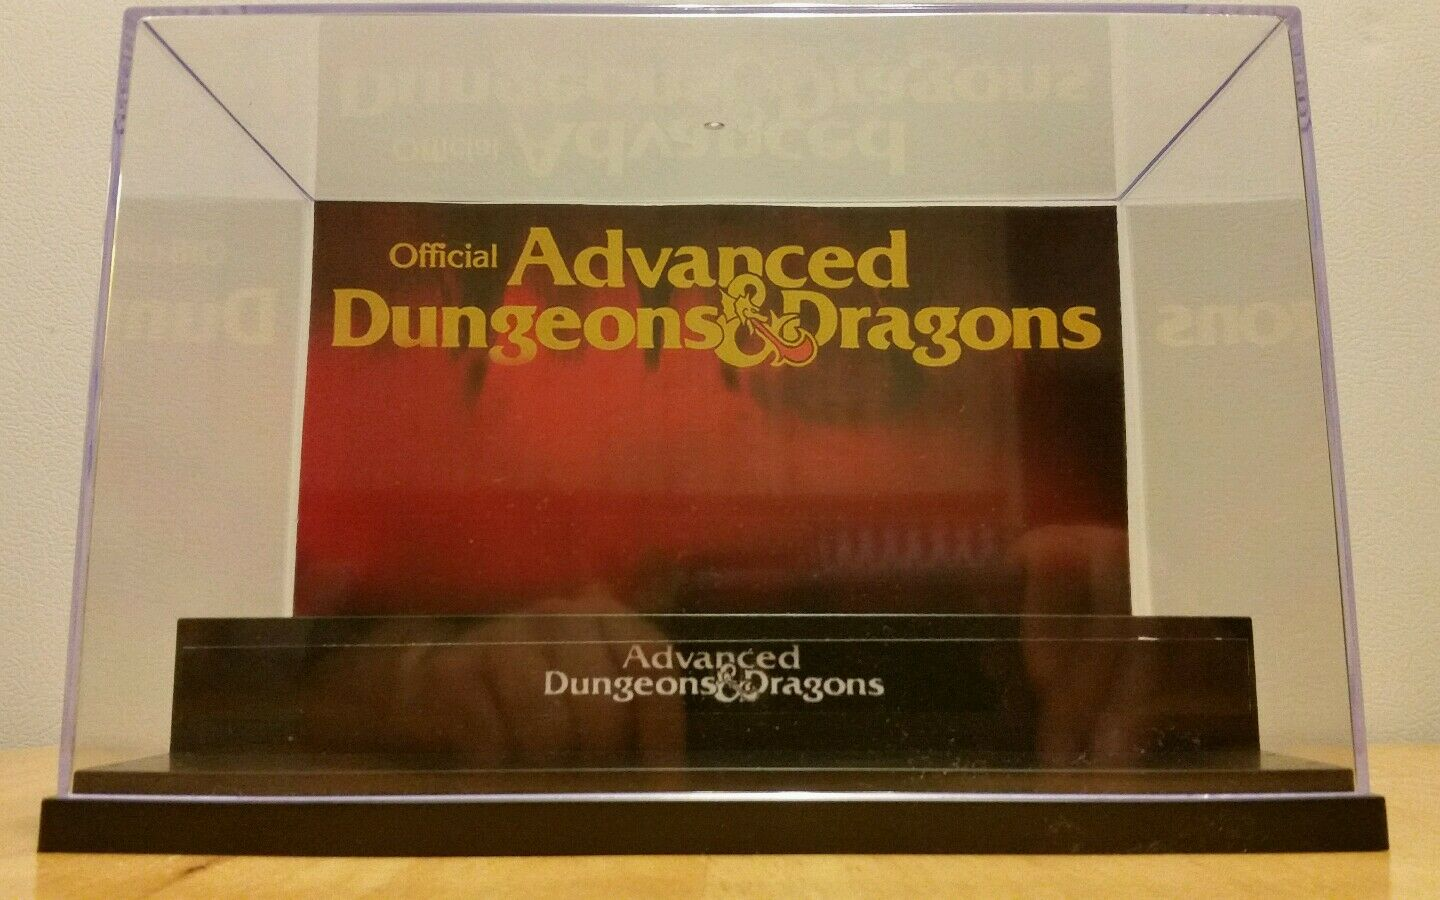 Advanced dungeons & dragons display diorama für actionfiguren fall